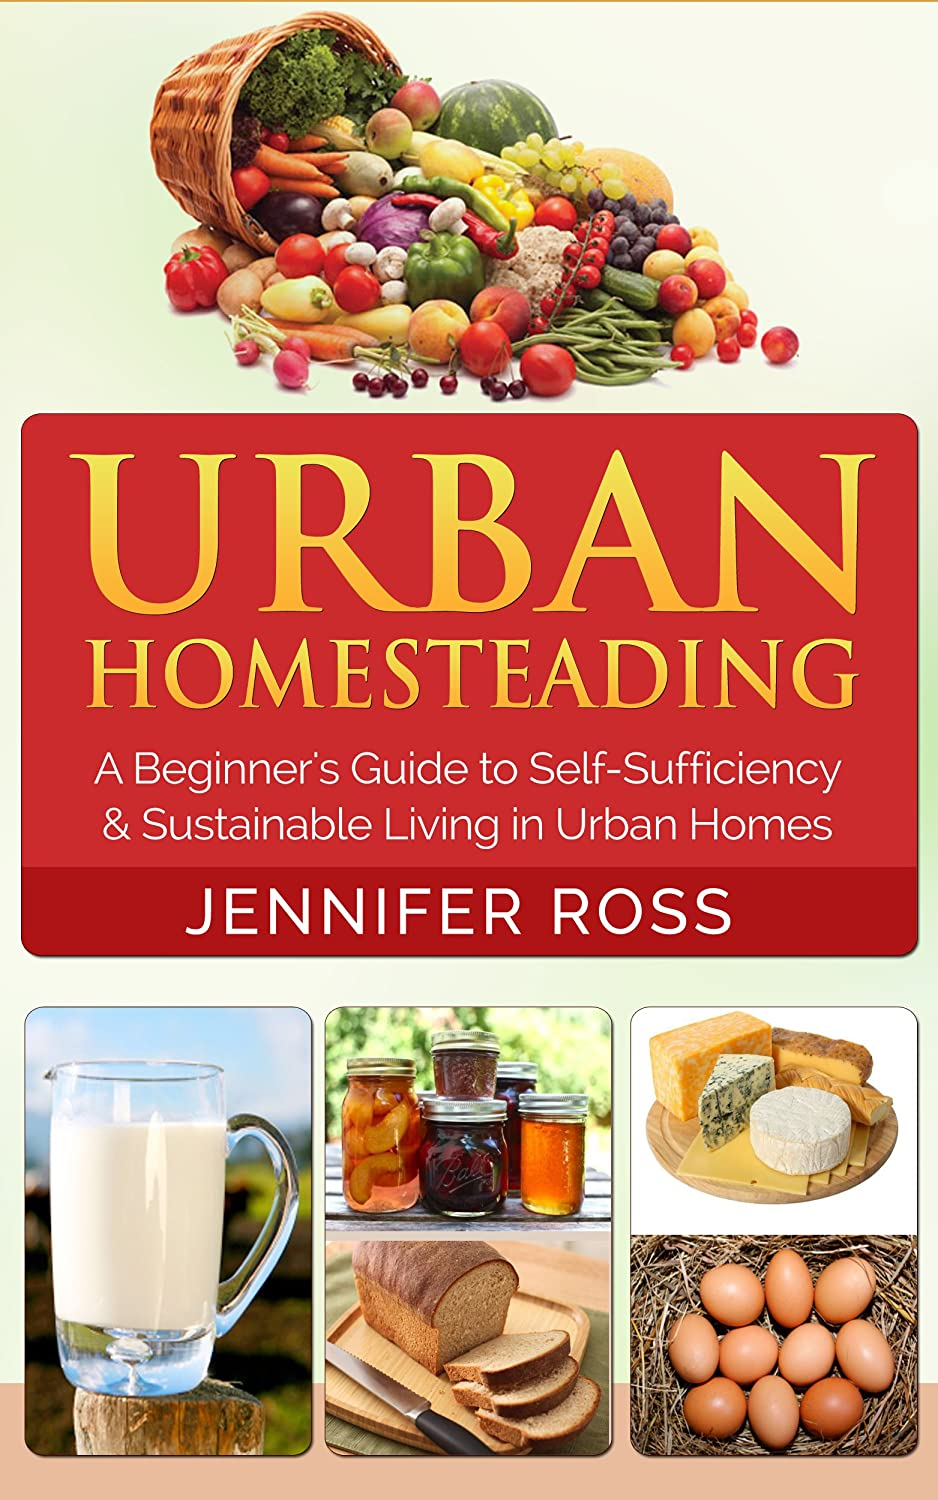 http://www.amazon.com/Homesteading-Beginners-Sufficiency-Sustainable-Gardening-ebook/dp/B00LAGPOO0/ref=as_sl_pc_ss_til?tag=lettfromahome-20&linkCode=w01&linkId=WCGSXGIEJZIJLELS&creativeASIN=B00LAGPOO0